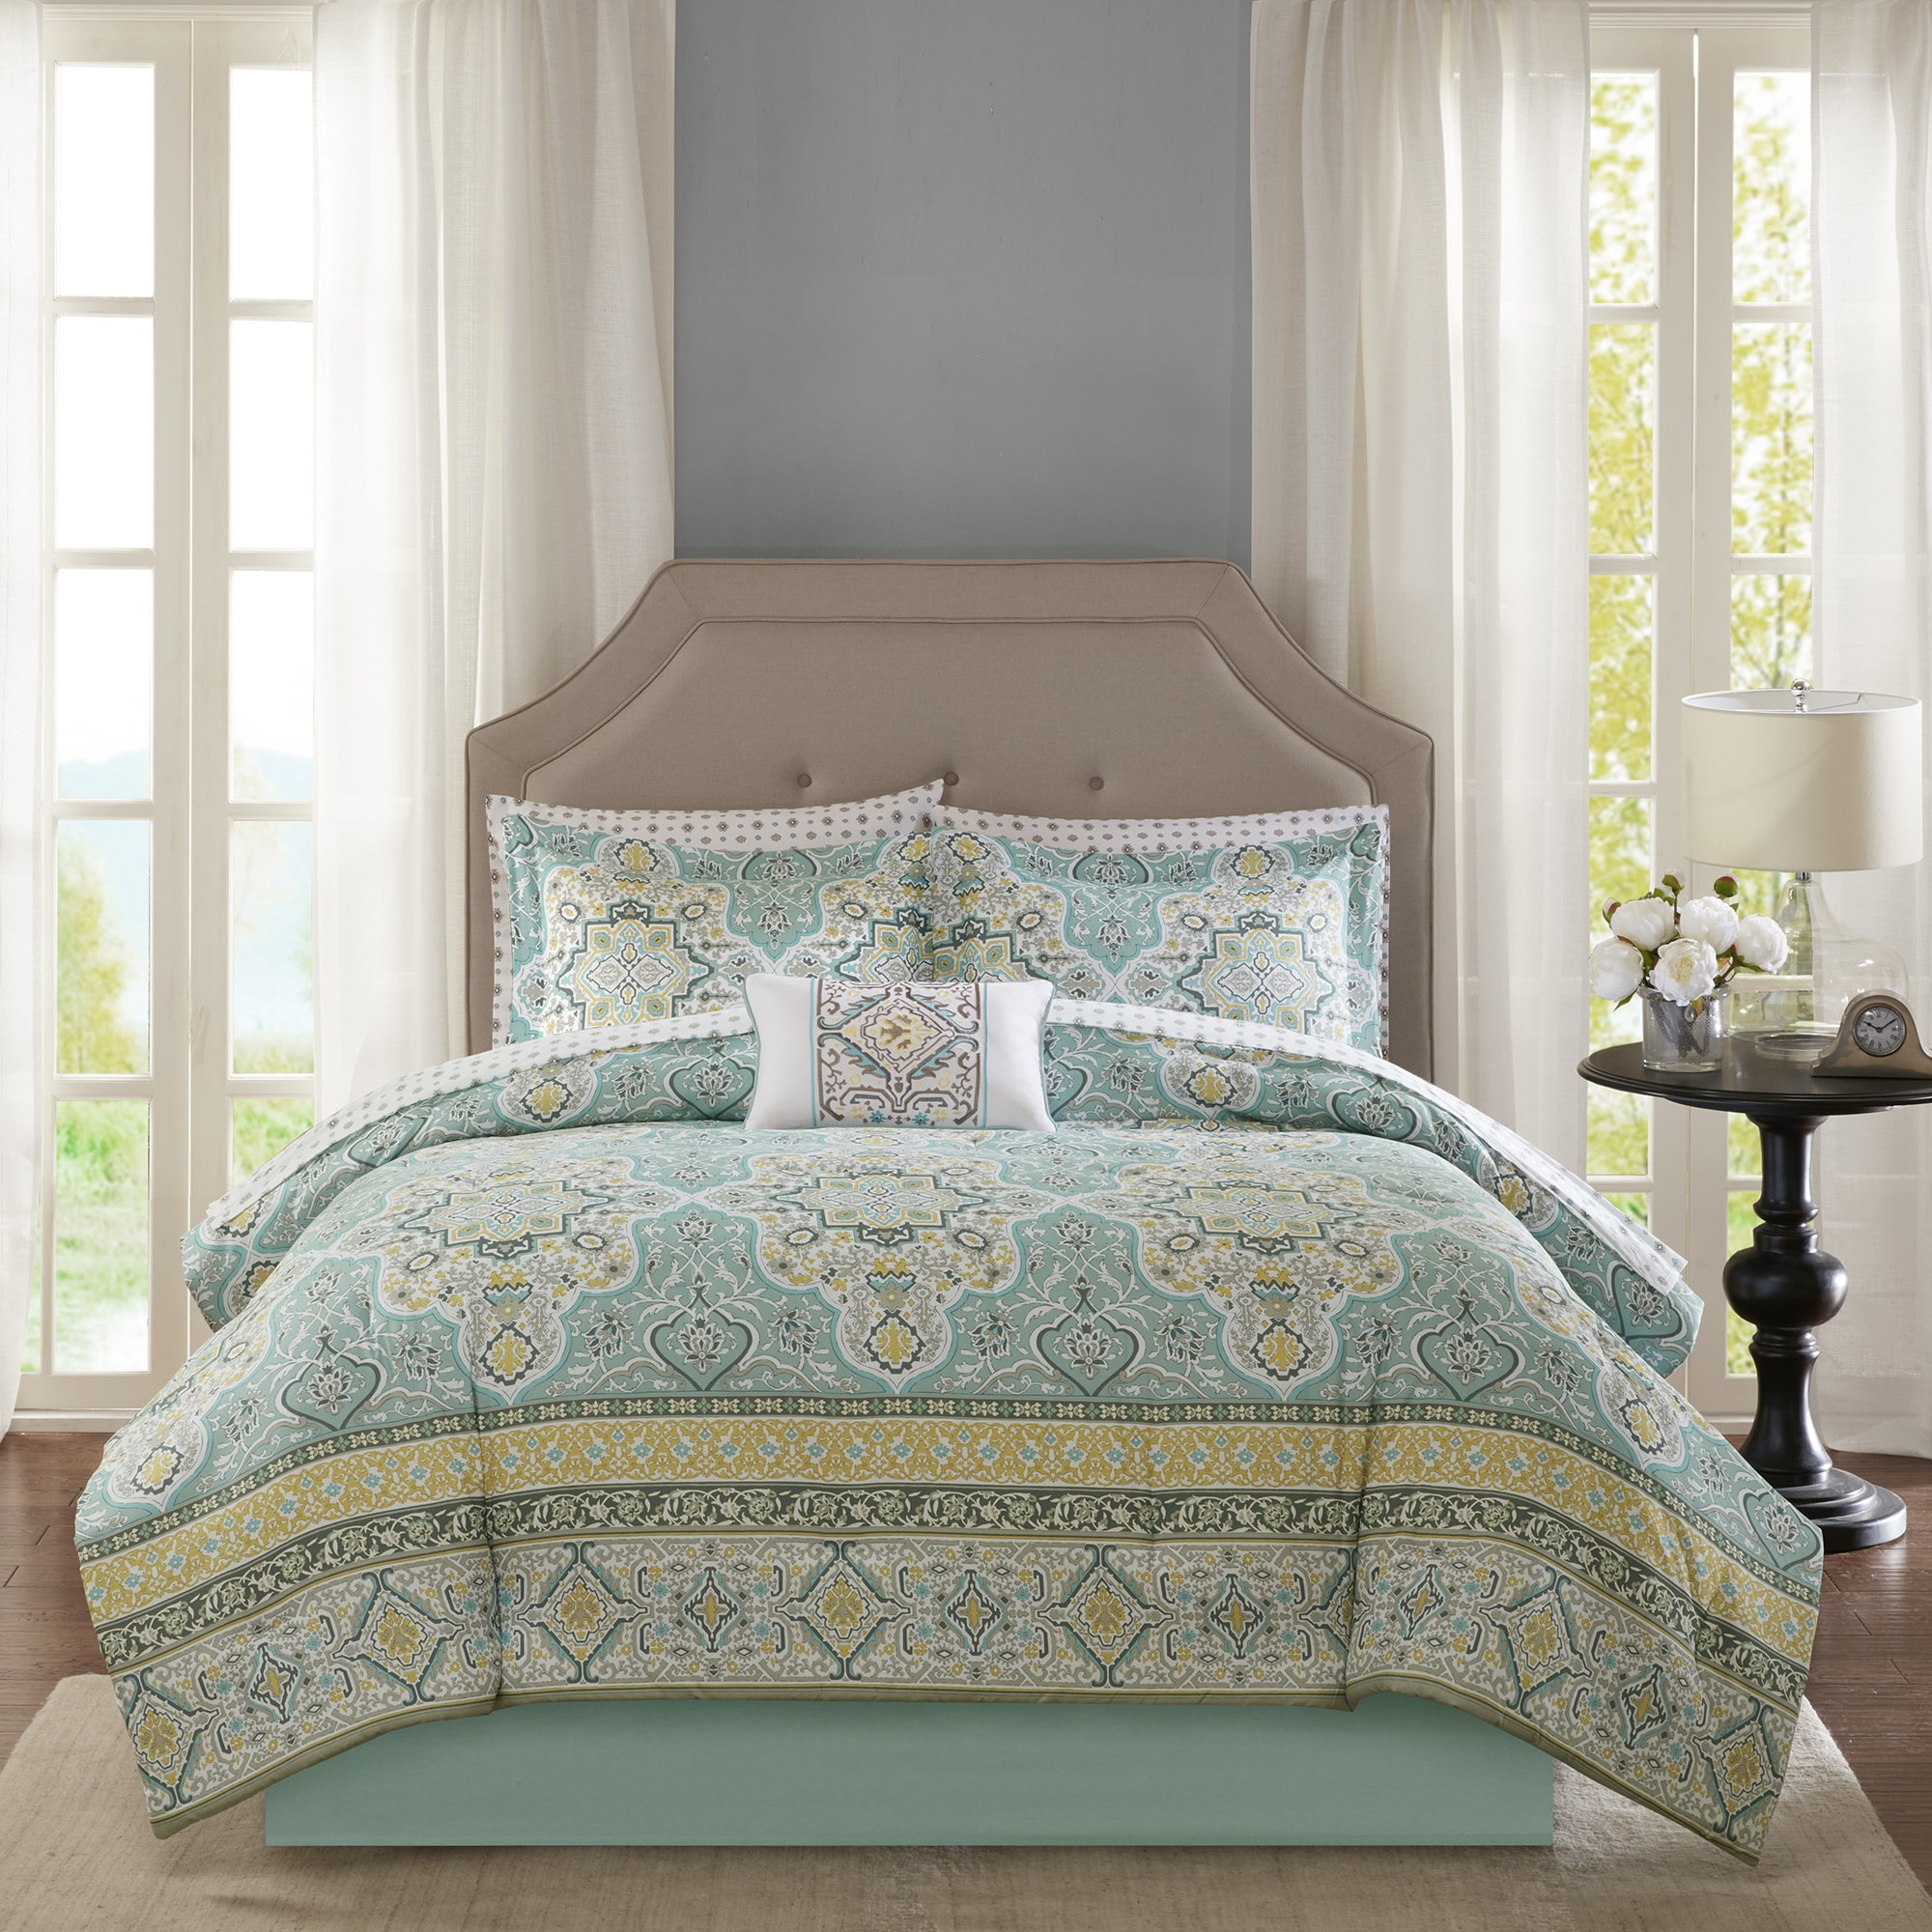 park cotton madison today brianna bath and product set shipping comforter bed com flower printed free overstock grey bedding yellow